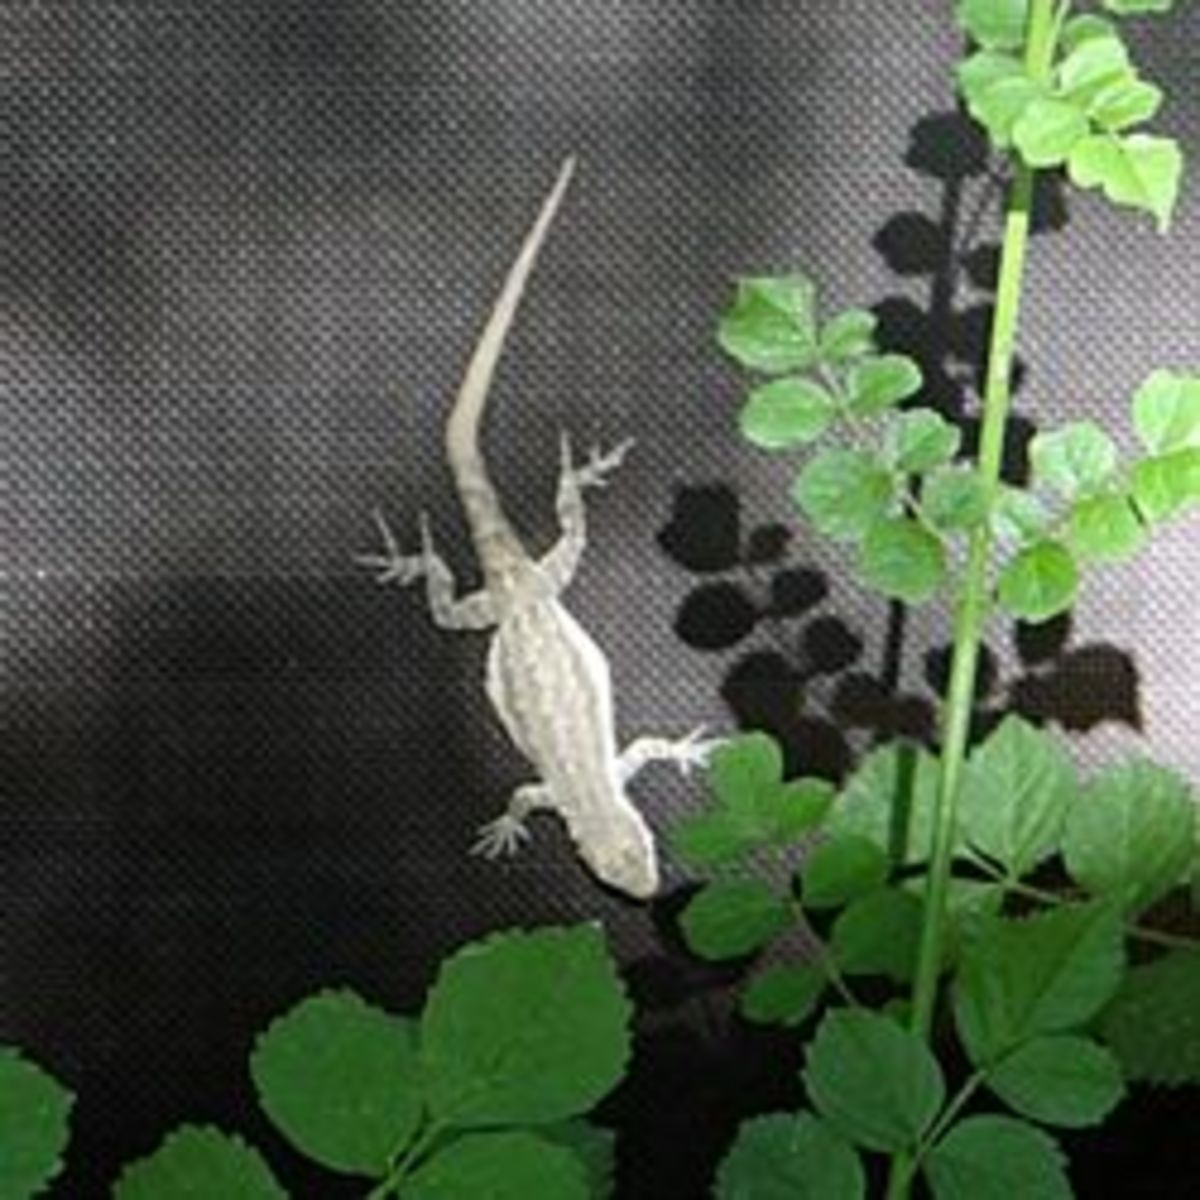 How to Attract Geckos to your Garden for Natural Pest Control